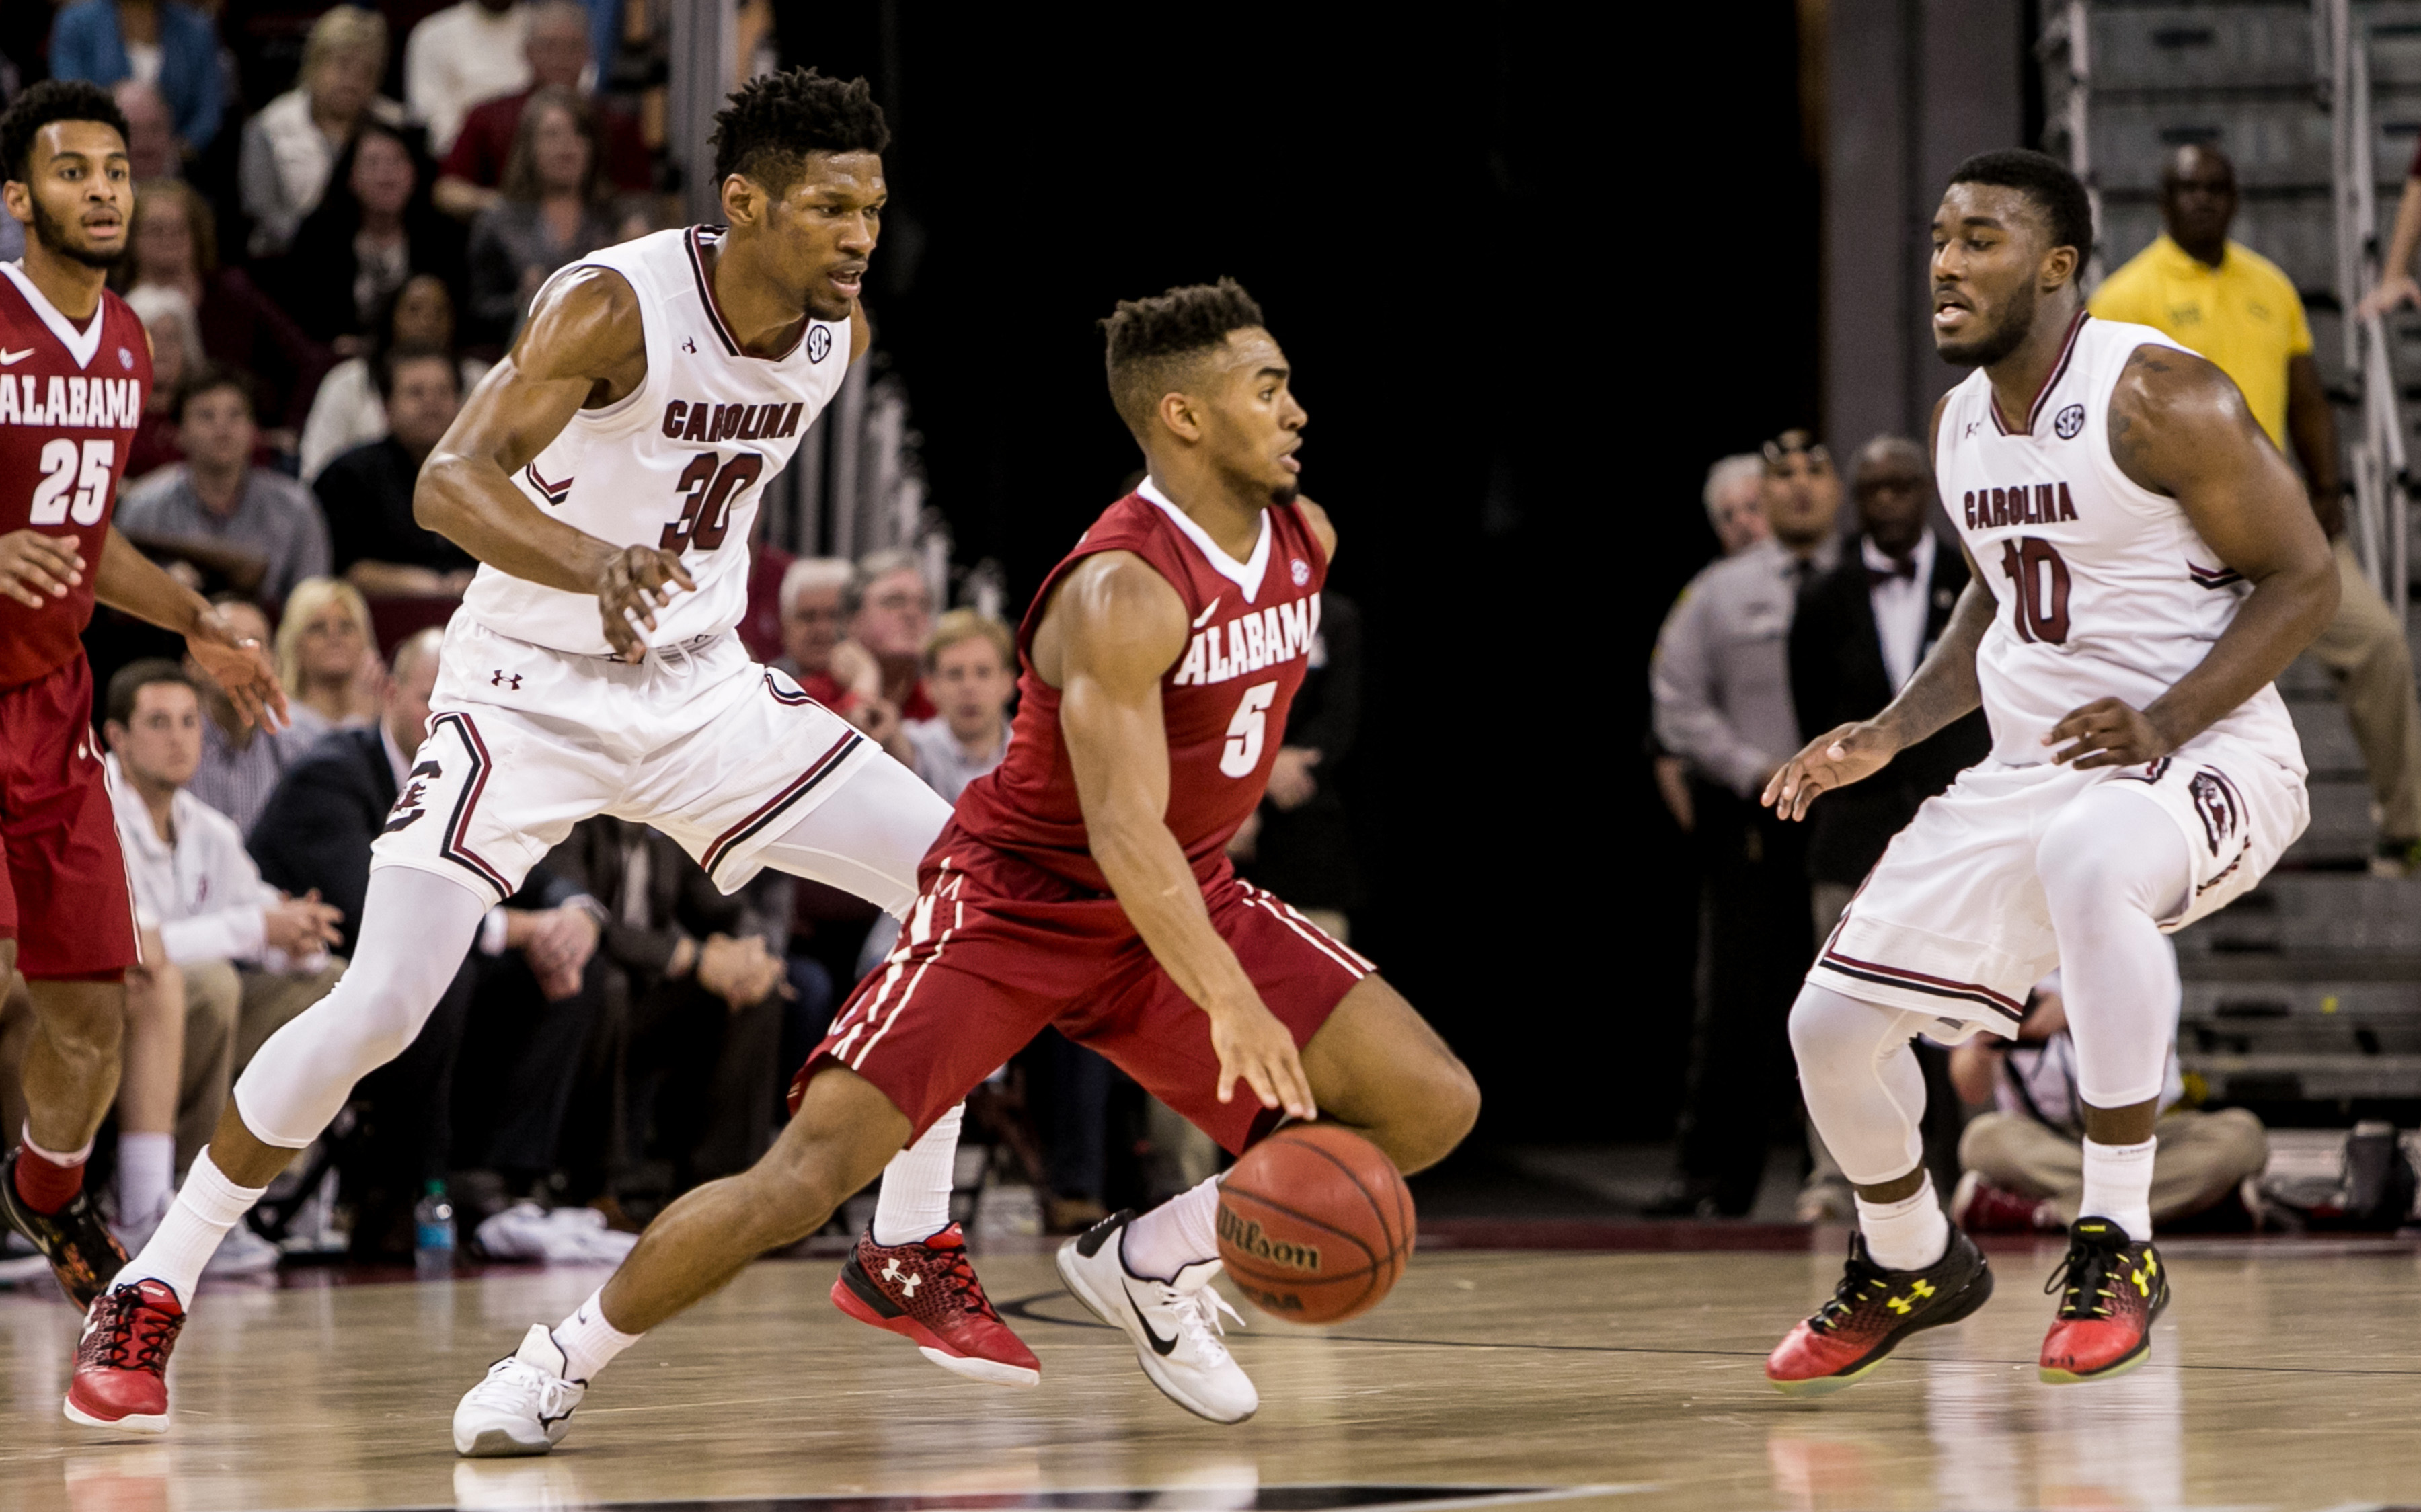 College basketball game times, TV schedule | NCAA.com